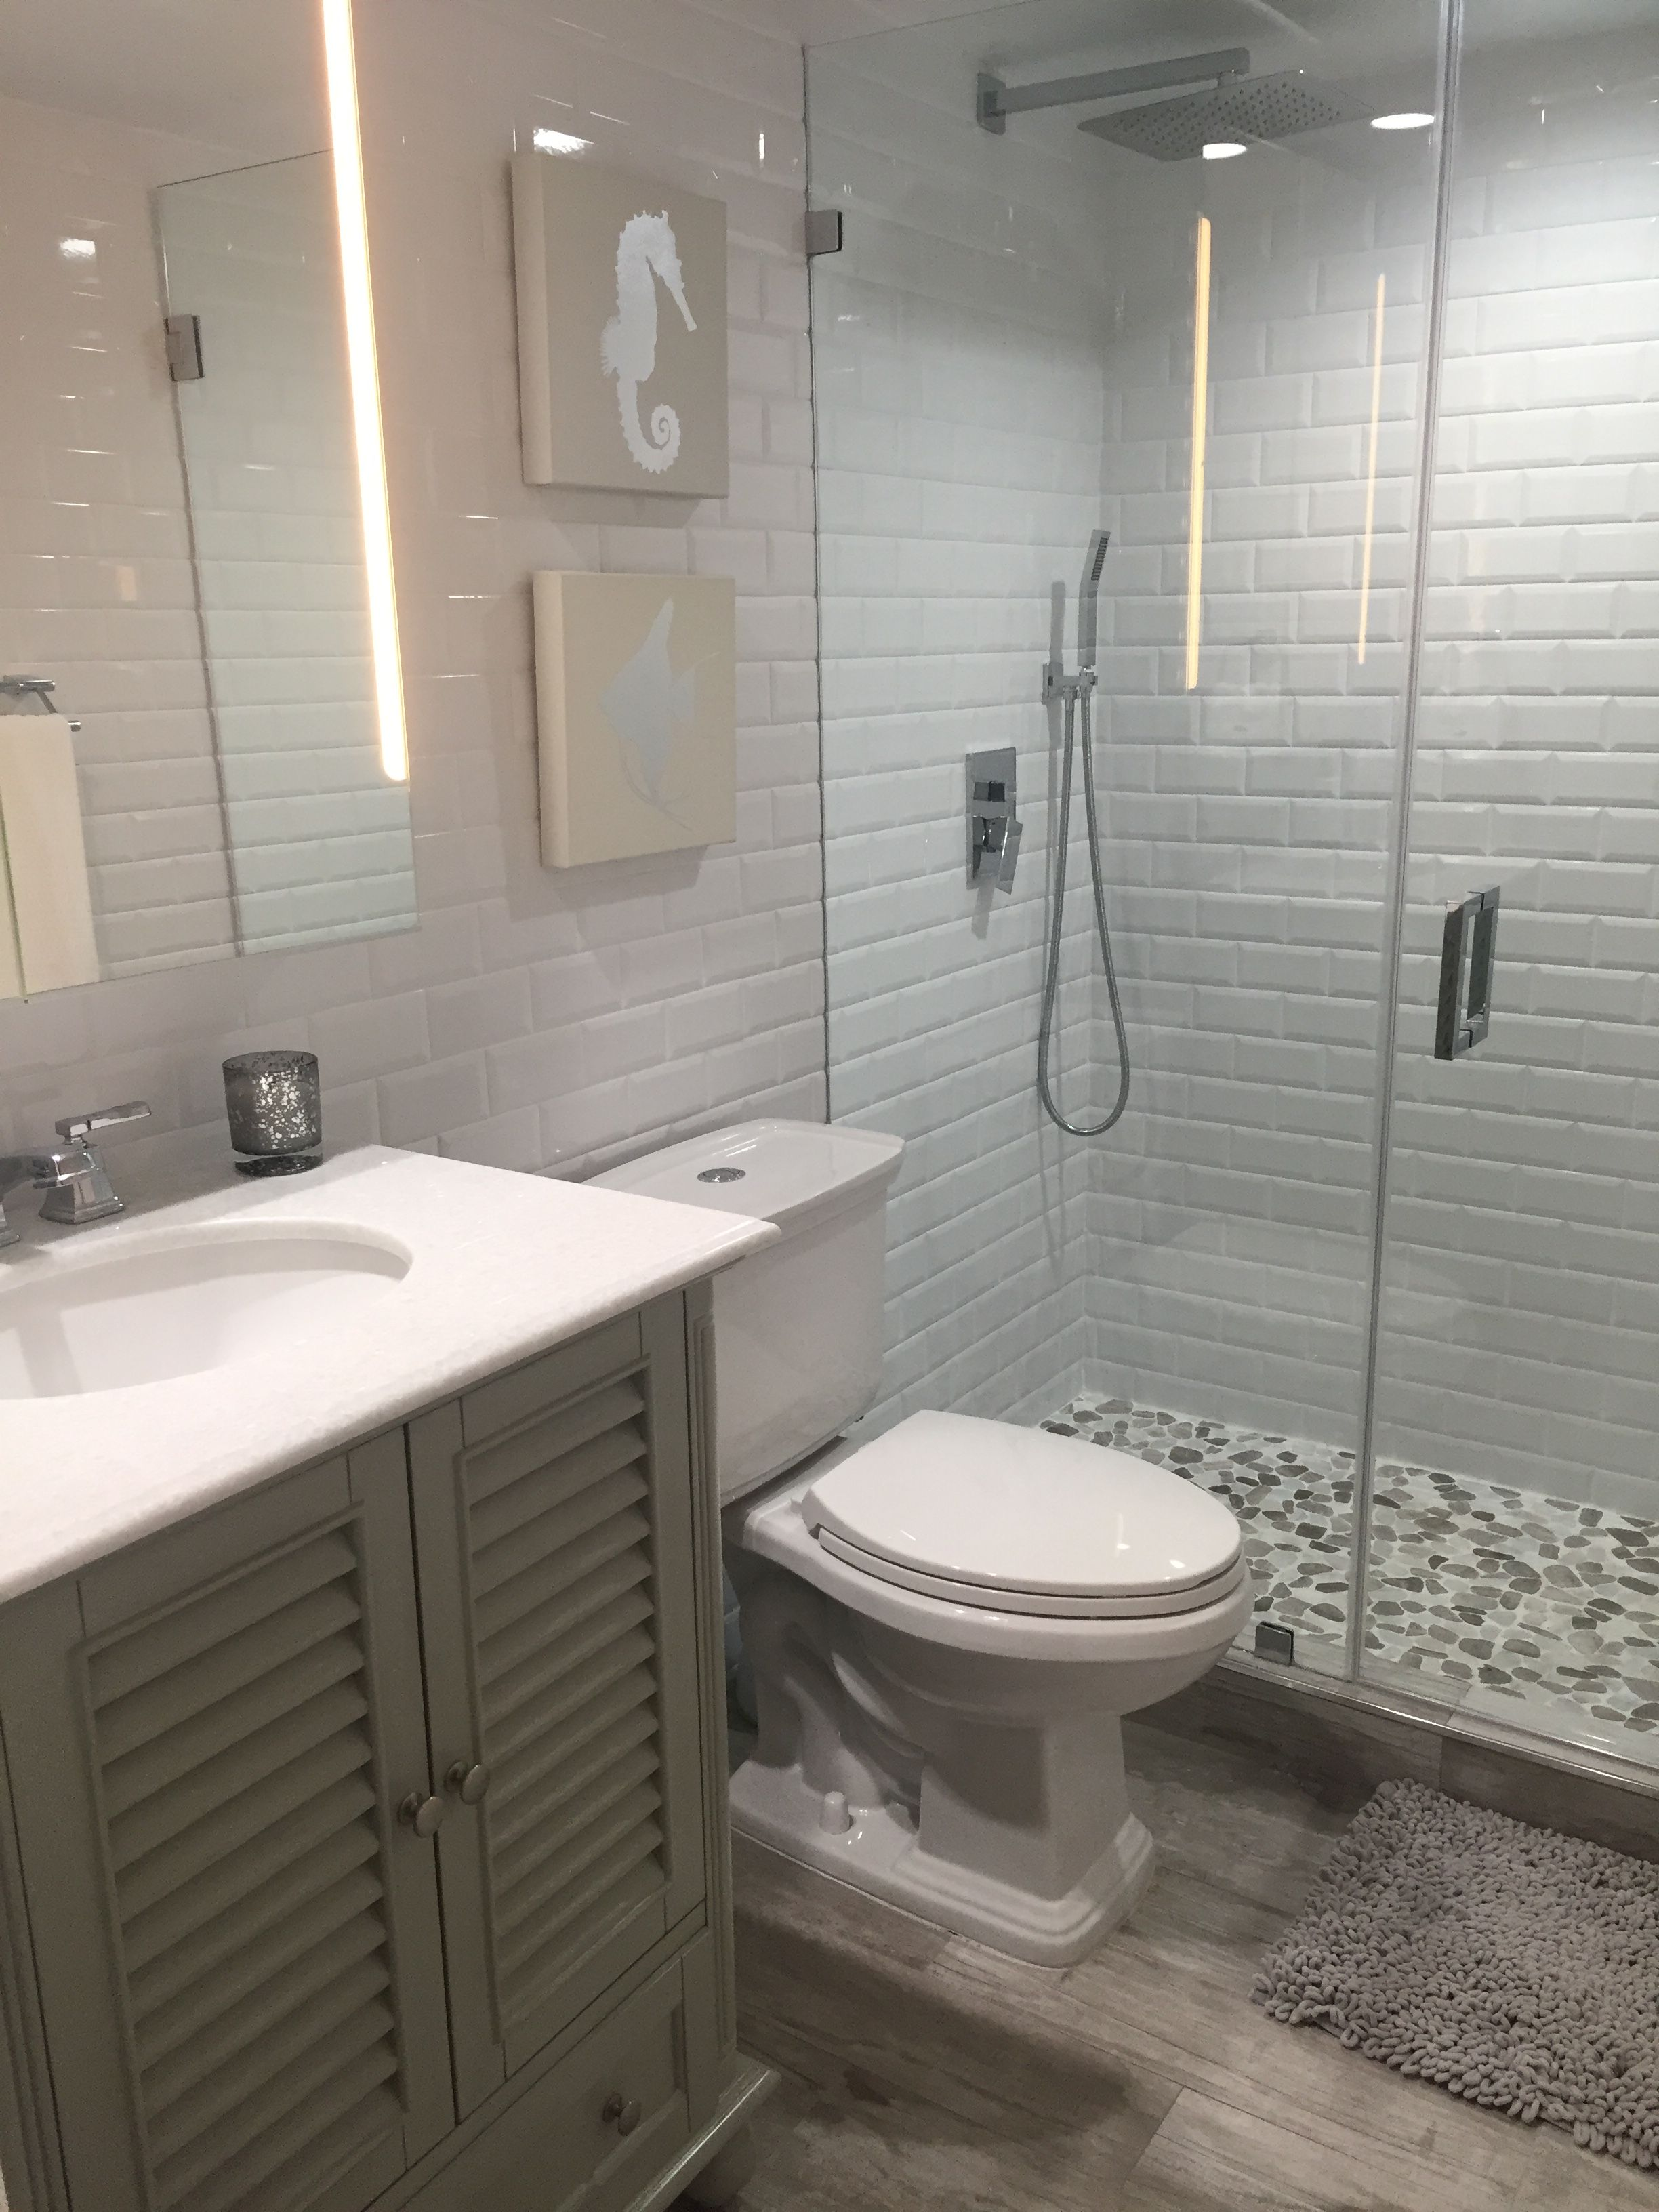 Miami bathroom remodel contractors, Miami bathroom remodeling, Miami bathroom remodeling quote.